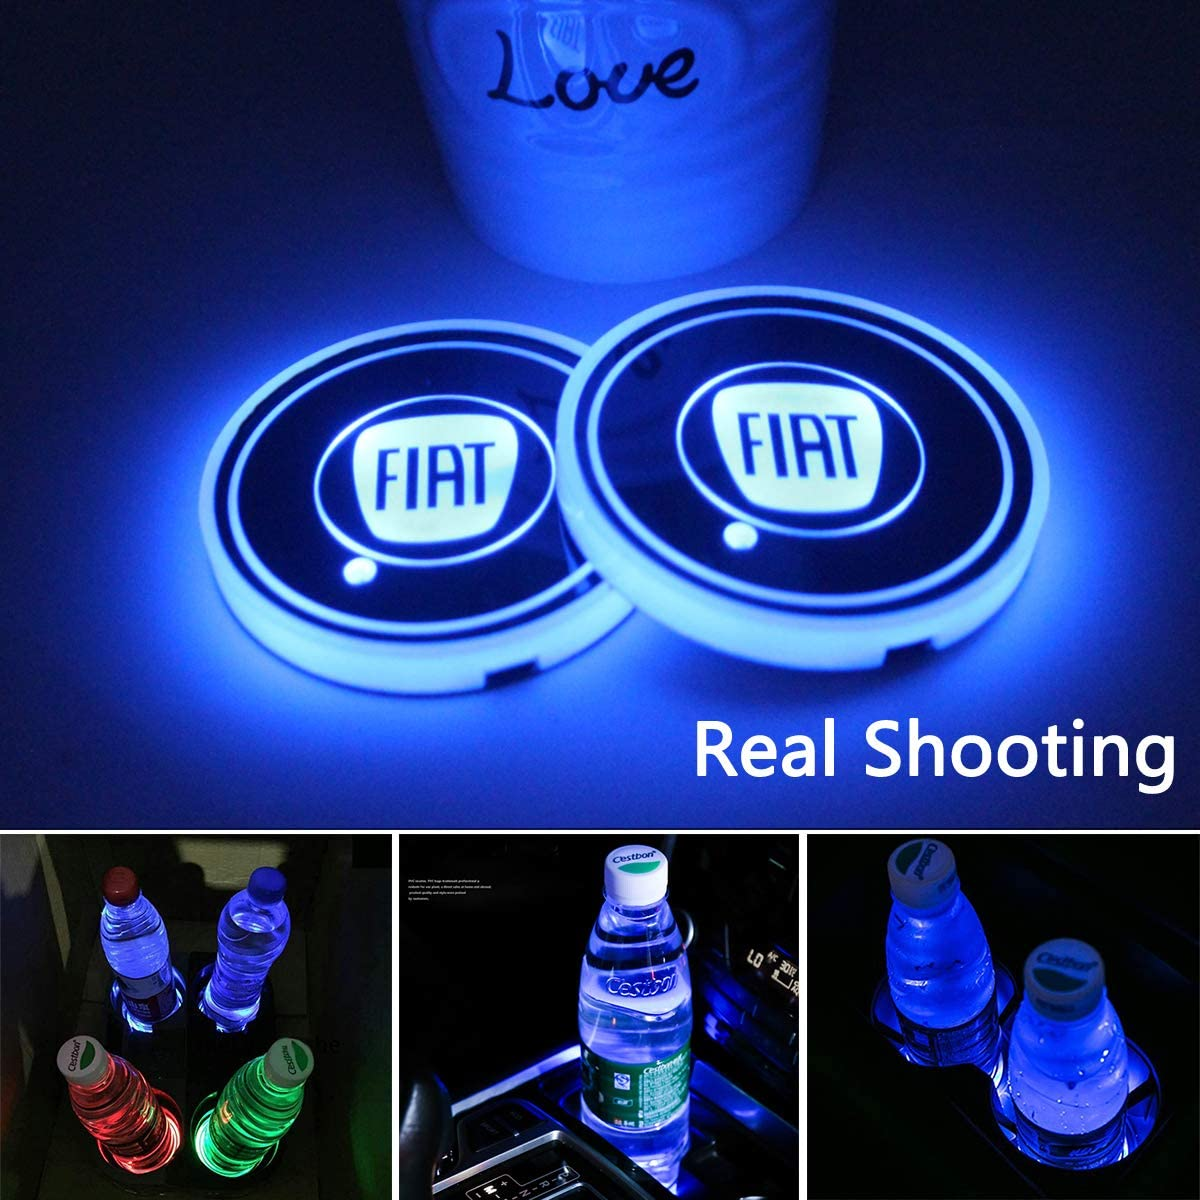 CAR FANS 2pcs fit Fiat LED Cup Holder Lights,7 Colors Changing USB Charging Mat Luminescent Cup Pad, LED Interior Atmosphere Lamp